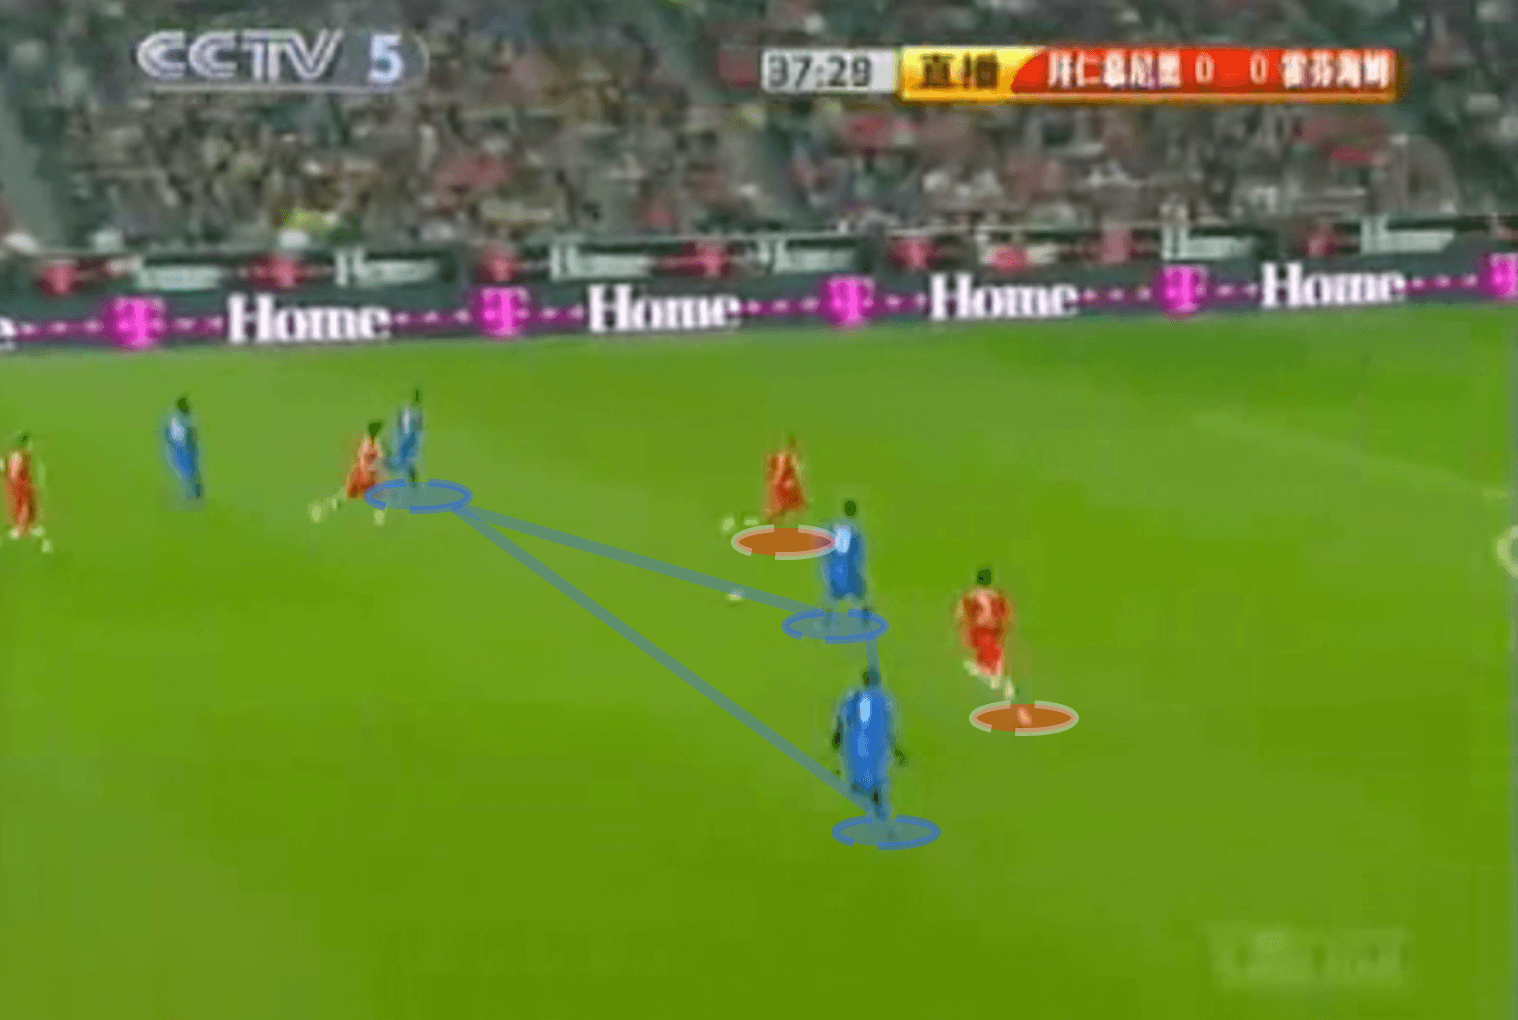 Bundesliga 2008/09 : Bayern Munich vs TSG 1899 Hoffenheim – tactical analysis tactics